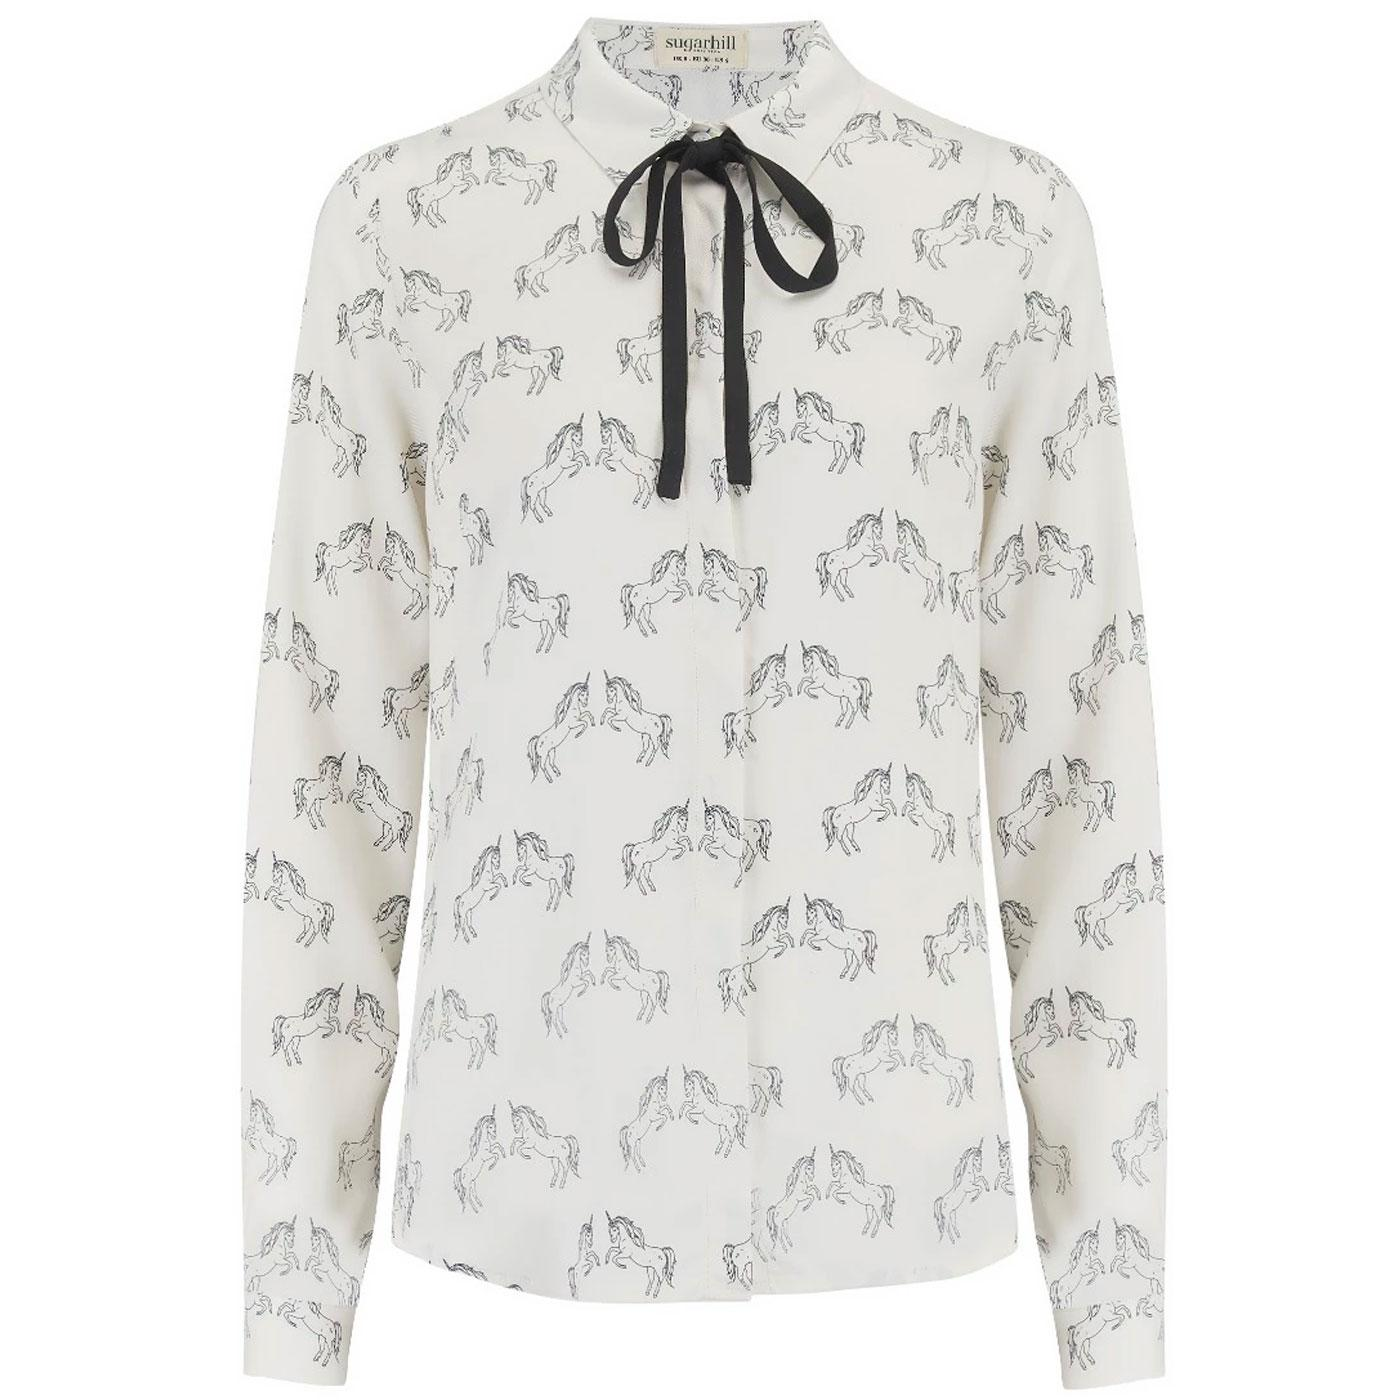 Catrina SUGARHILL BRIGHTON Unicorn Sketch Shirt